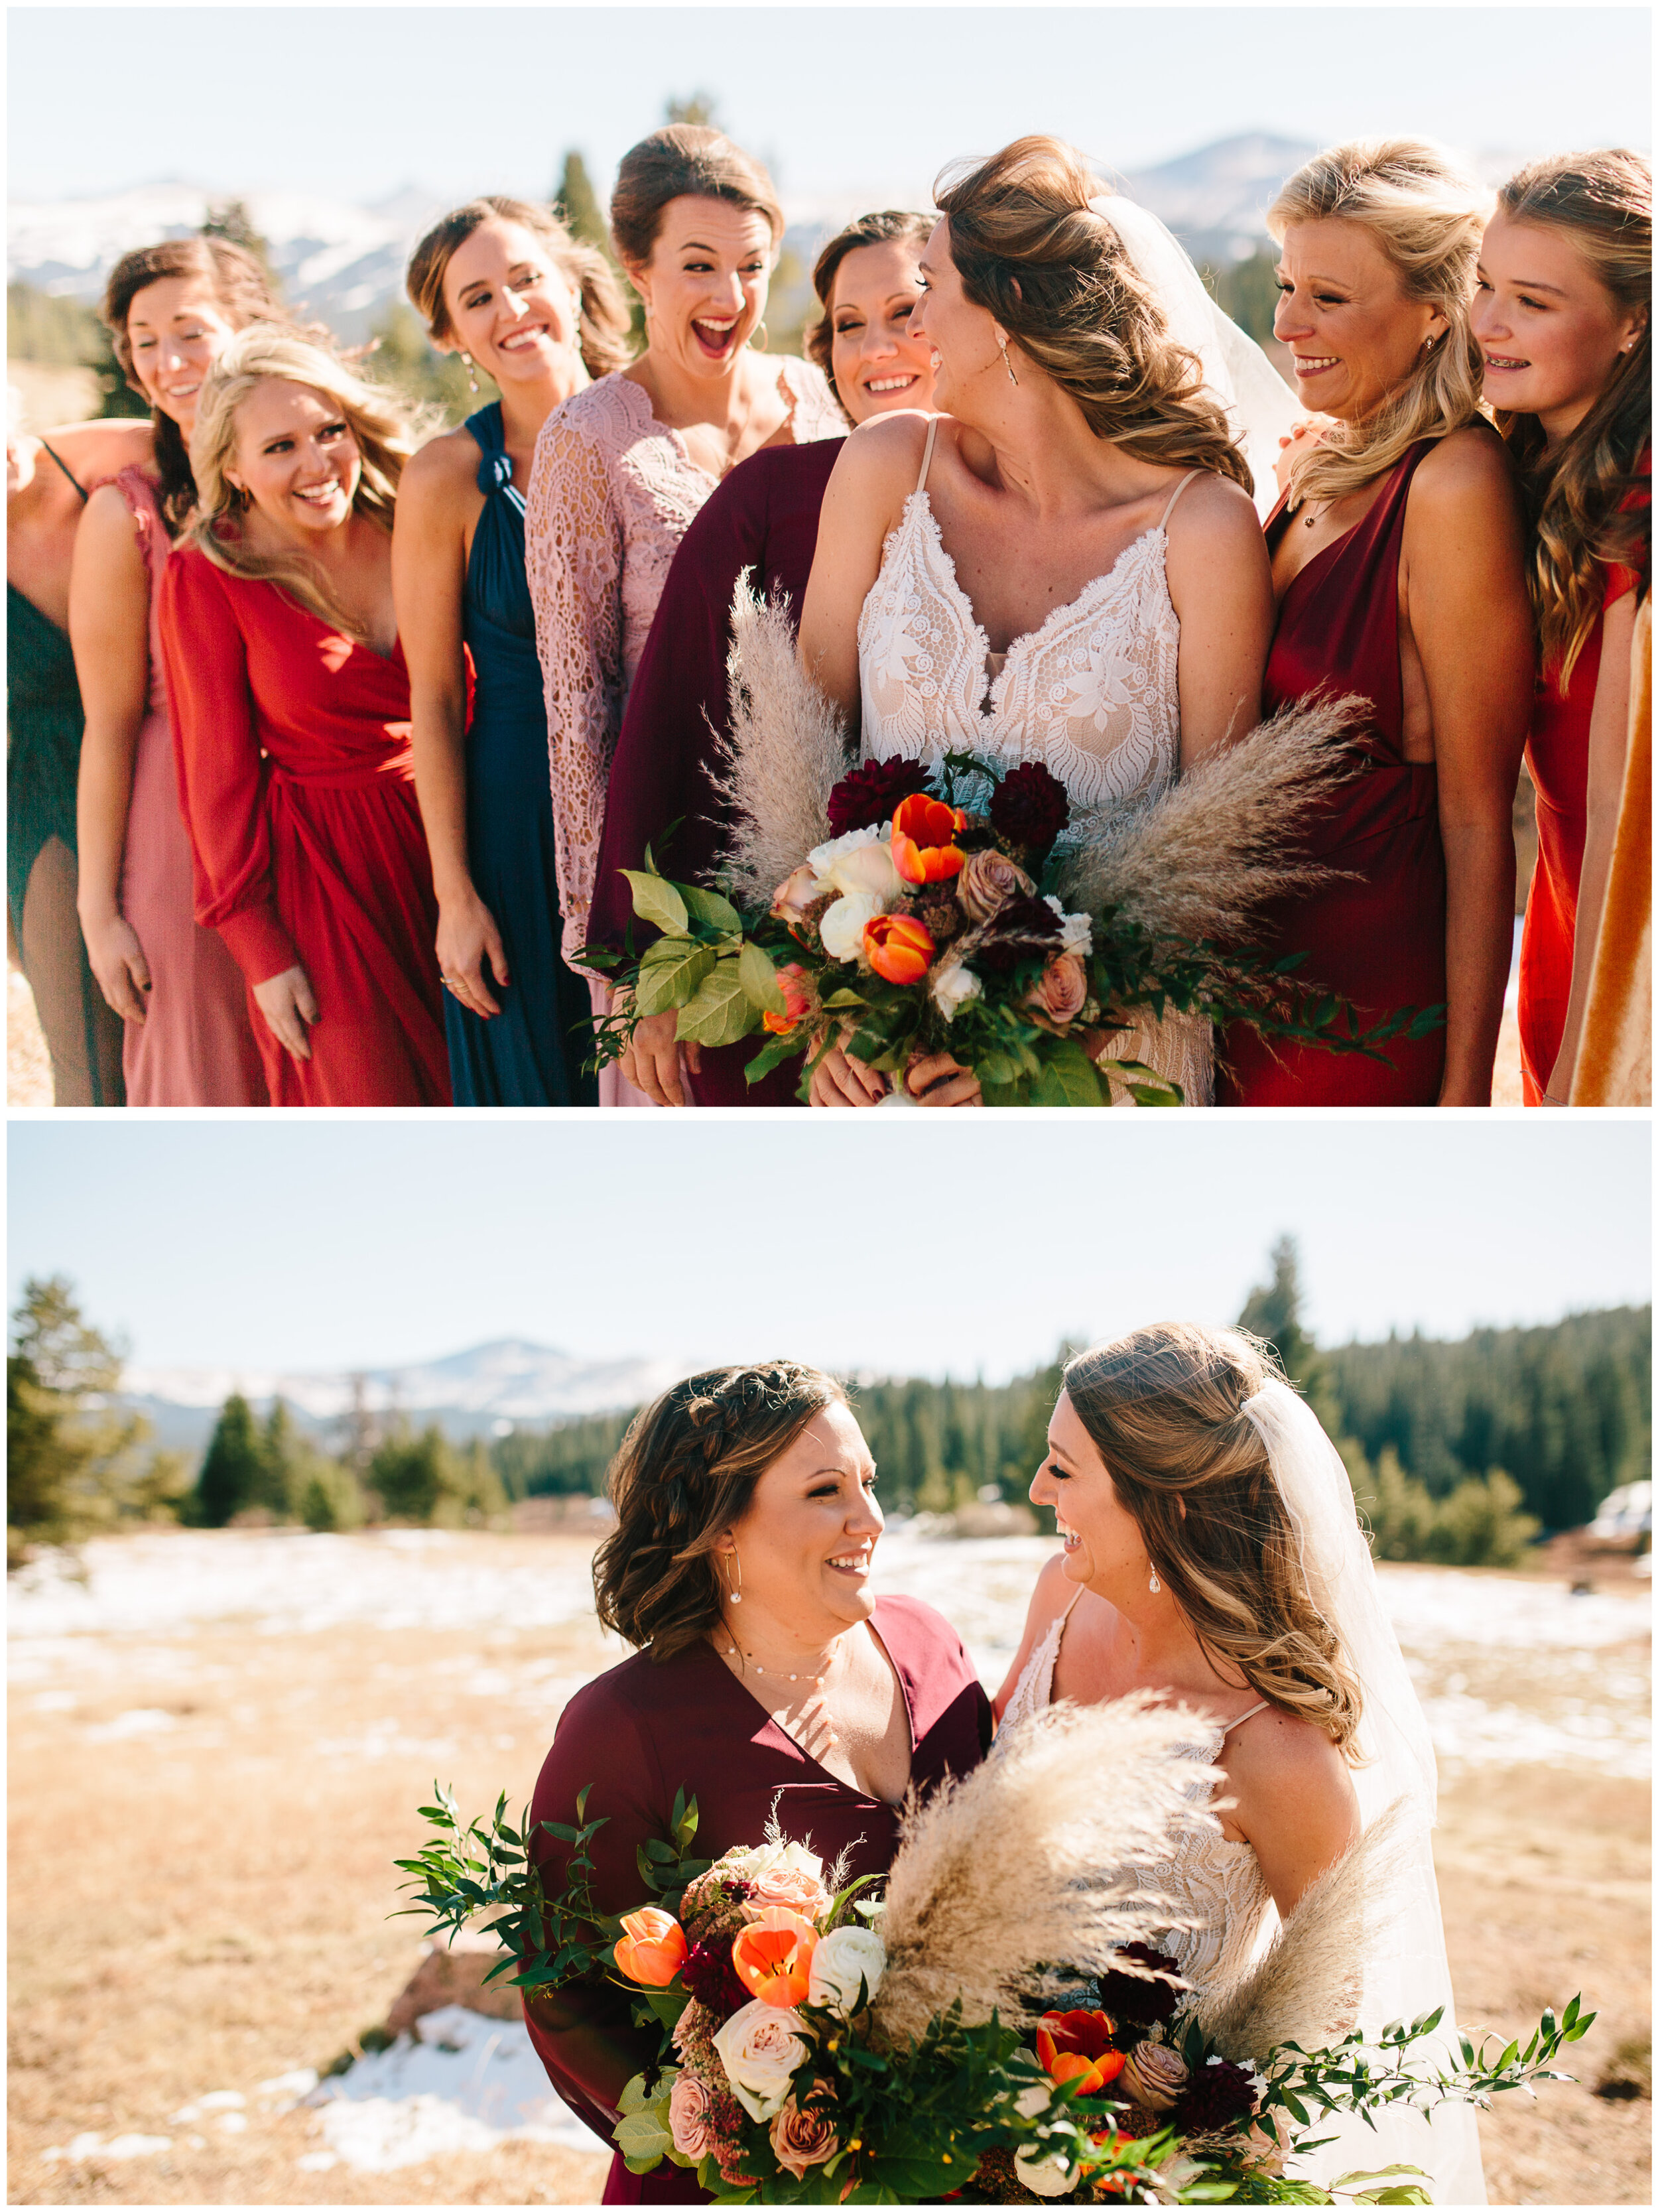 vail_colorado_wedding_edit2.jpg